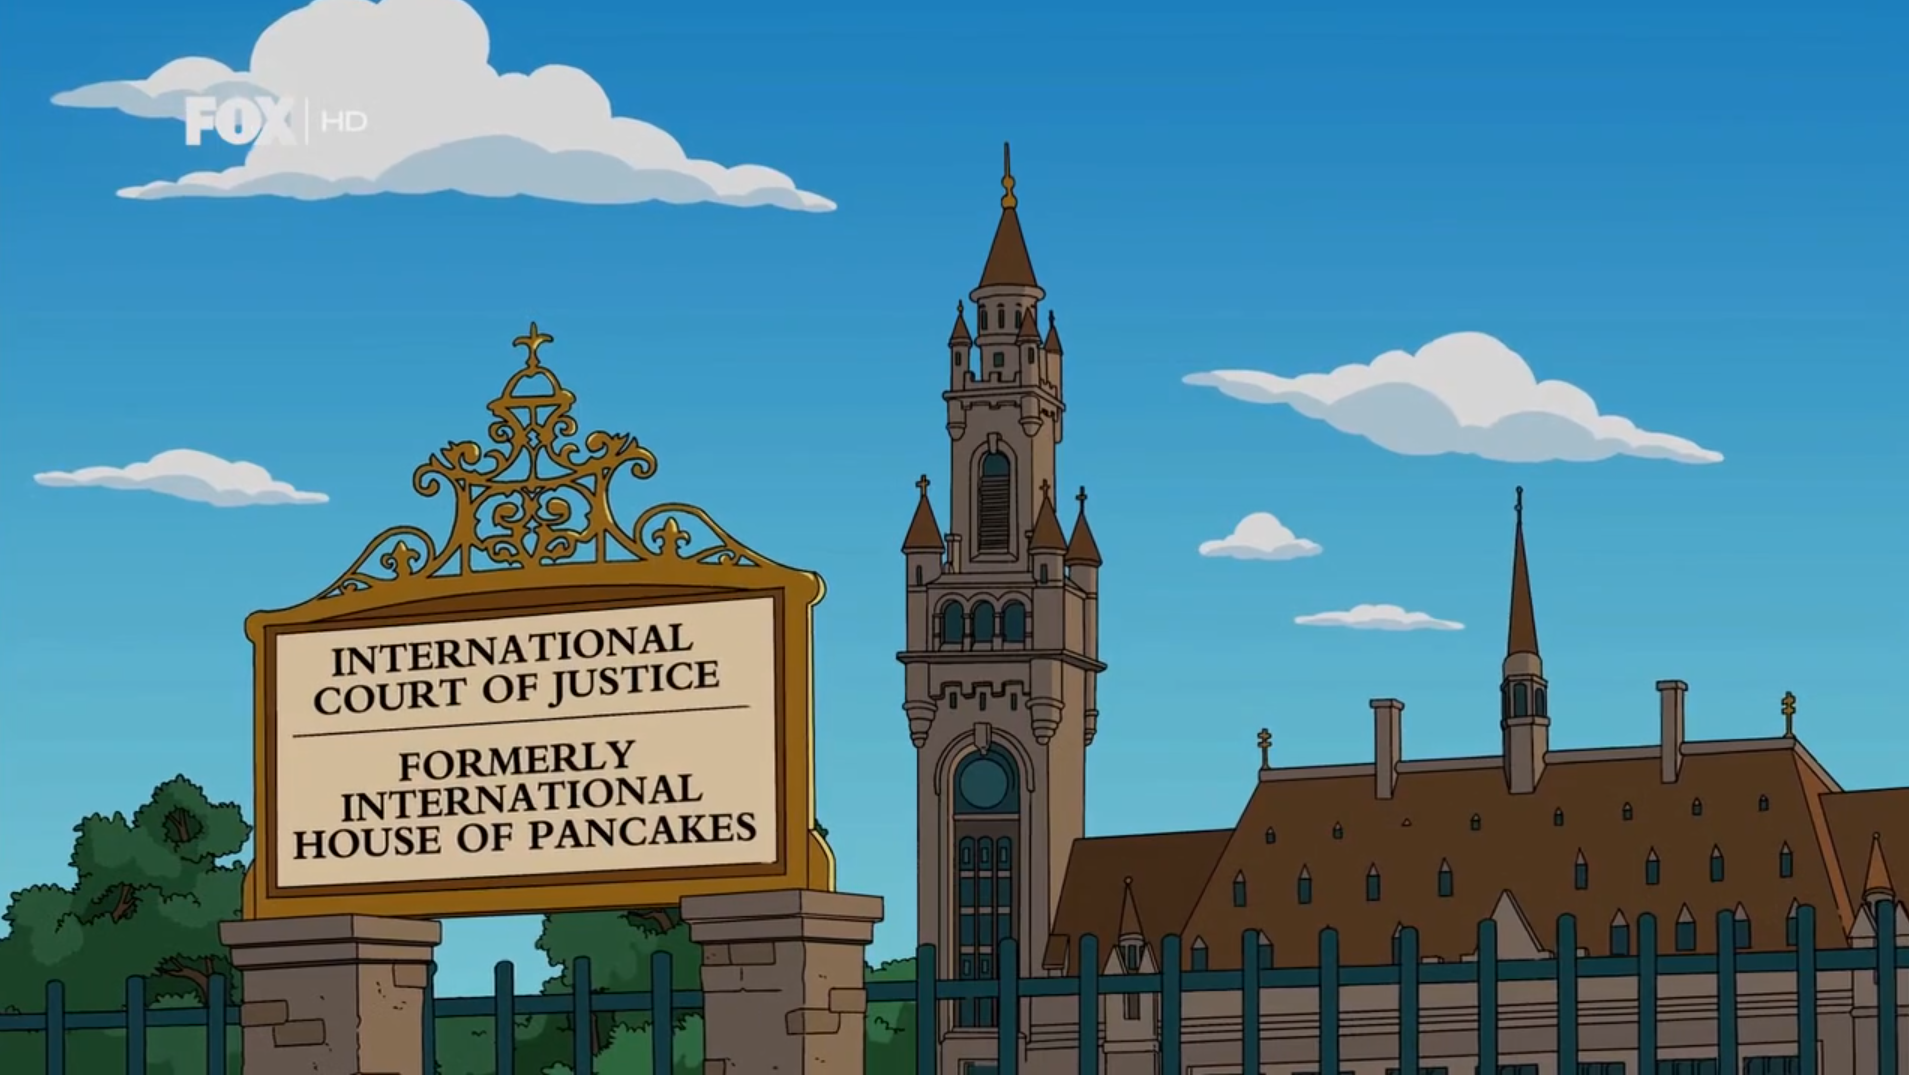 International Court of Justice ep.png